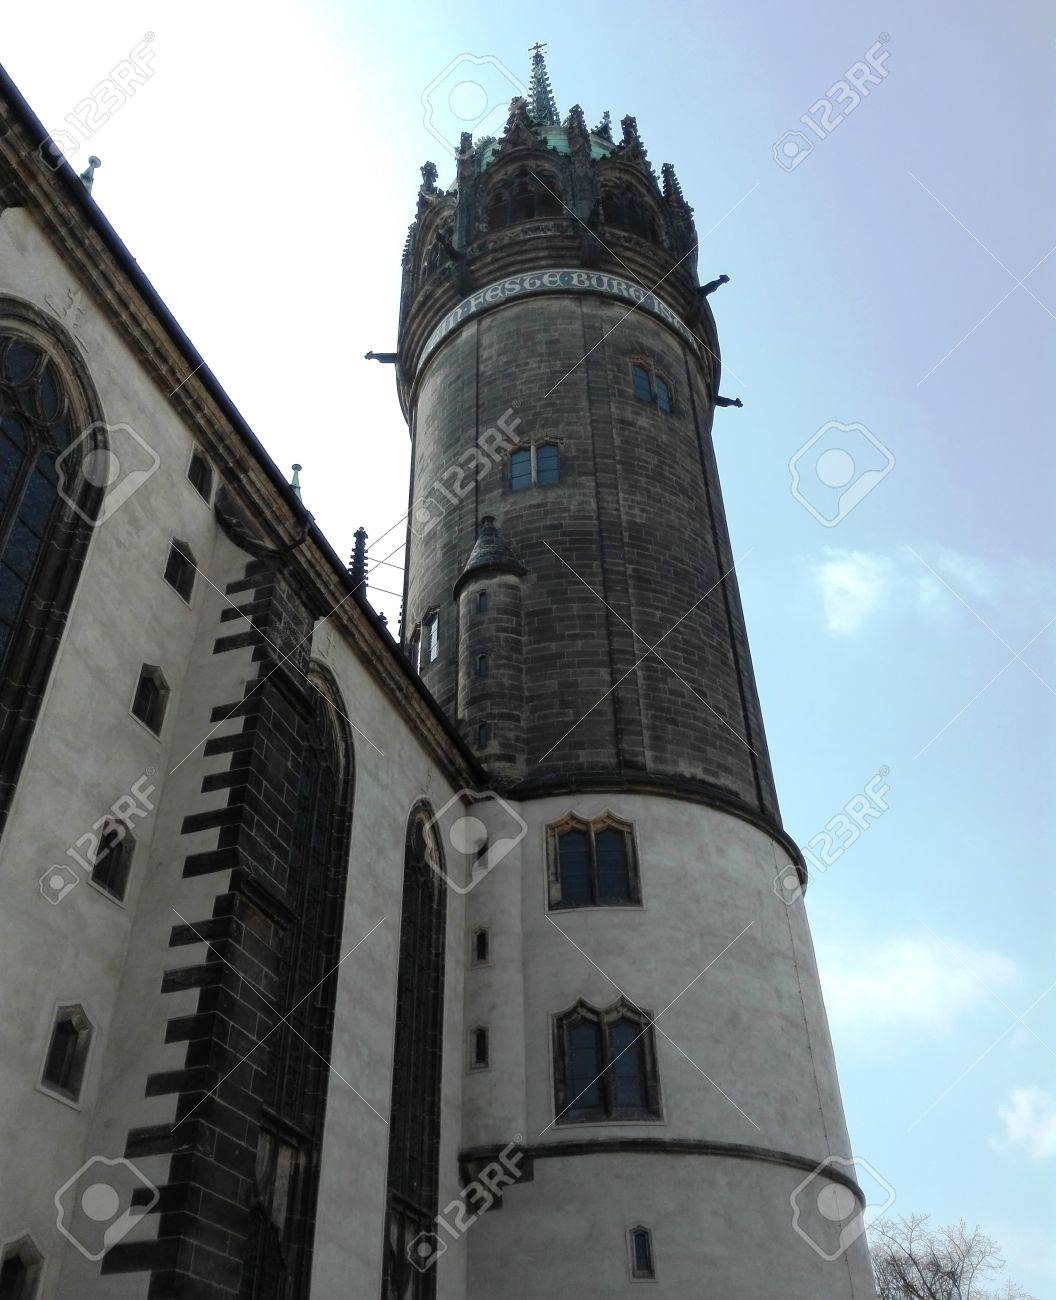 Decorating martin luther church door photos : Tower Of The Castle Church Of All Saints, Wittenberg, Germany ...